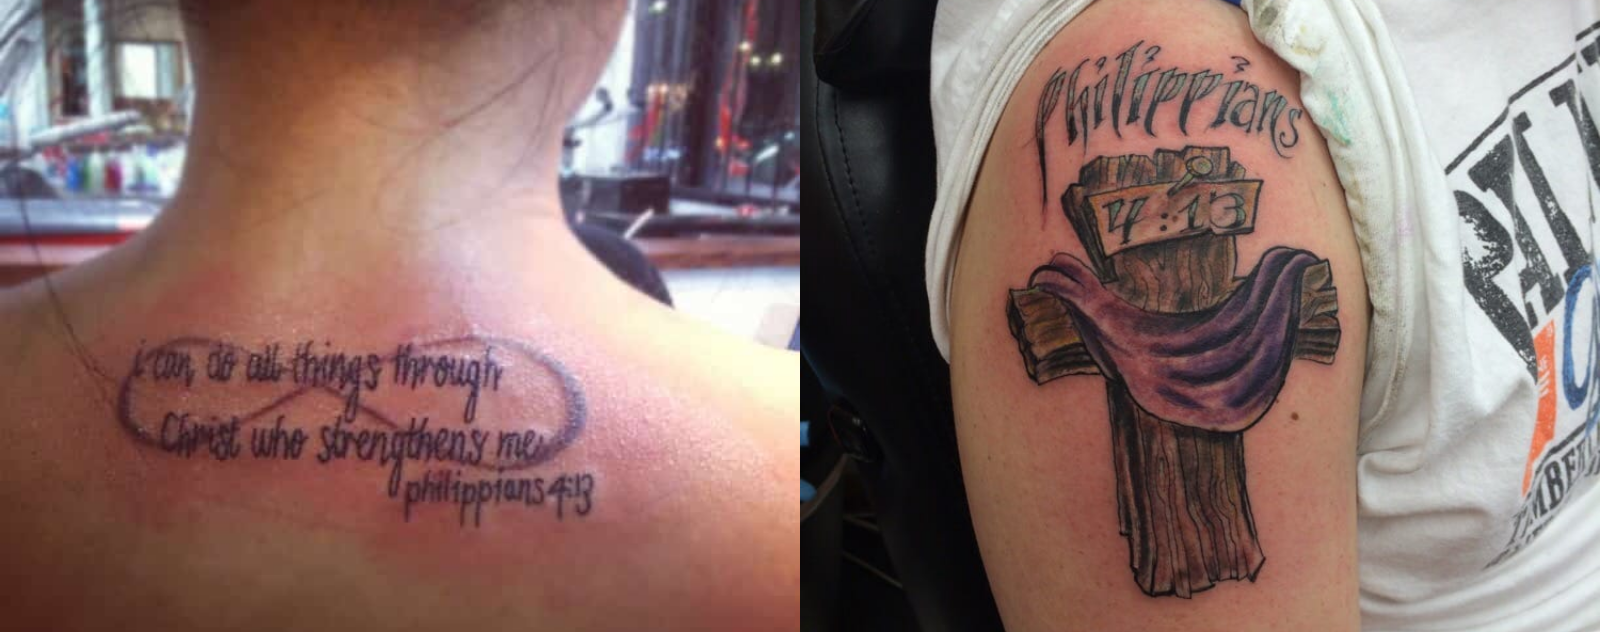 philippians-4-13-tattoo-shoulder-12